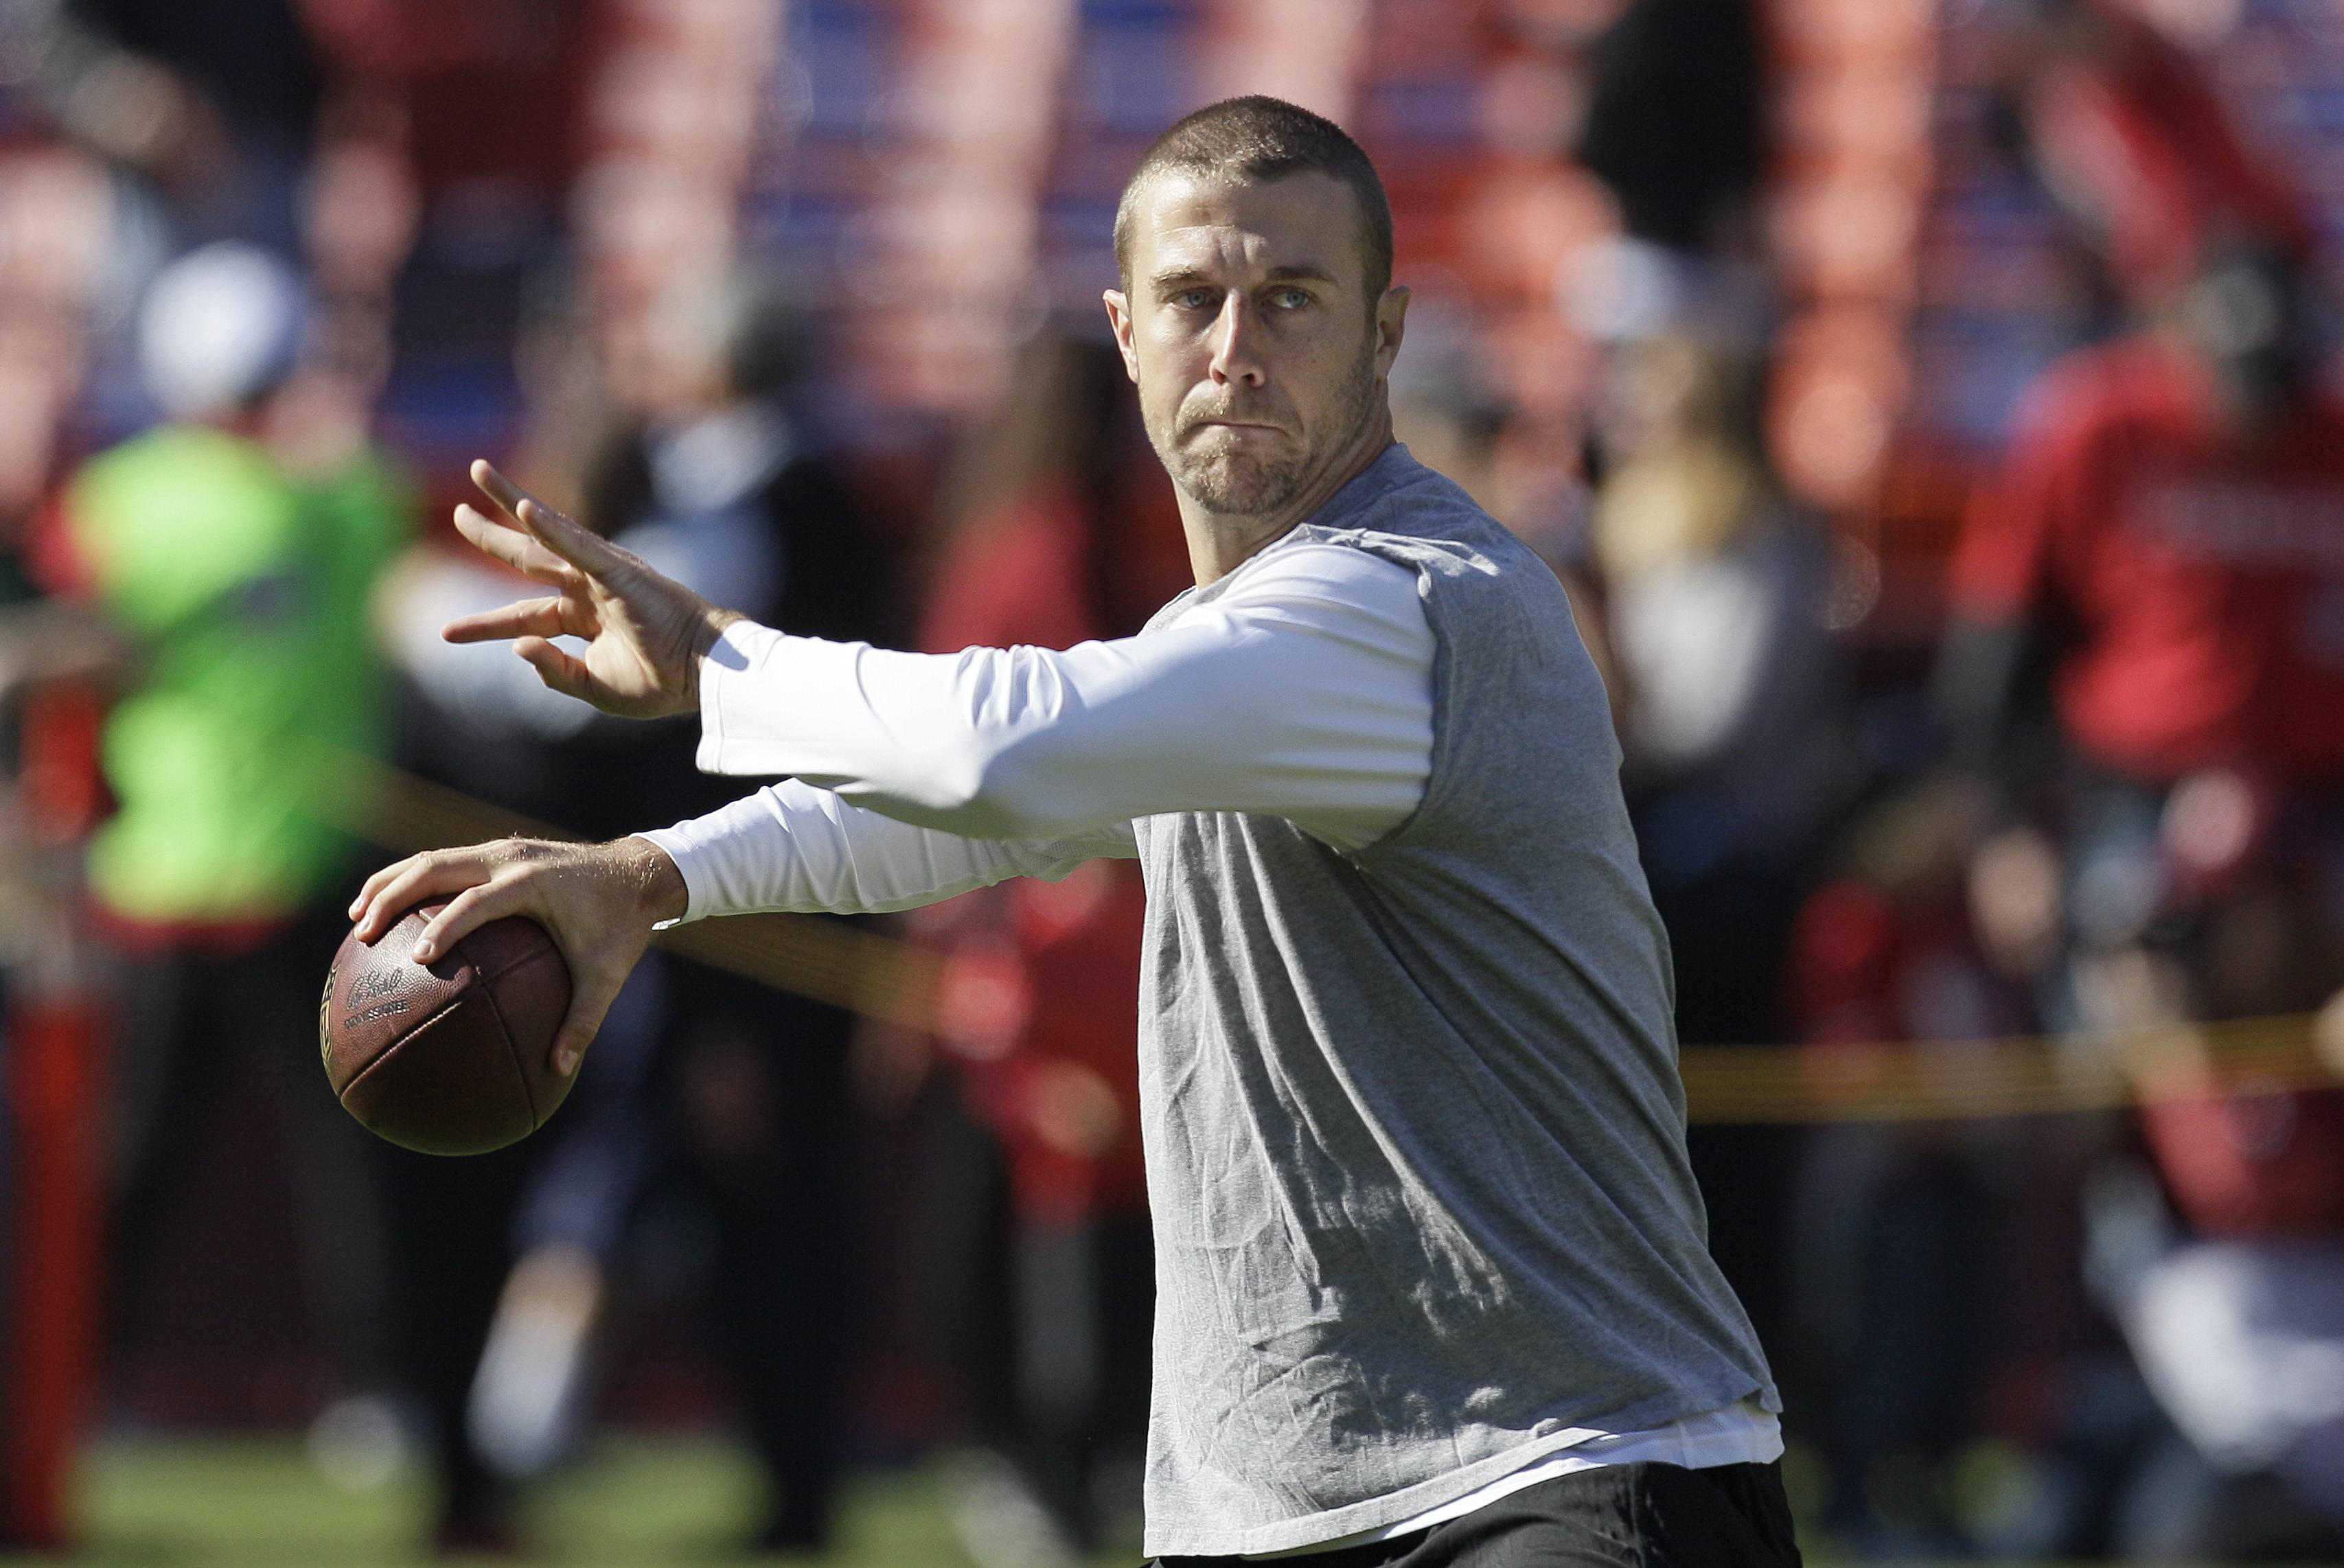 San Francisco 49ers quarterback Alex Smith throws Sunday before playing against the St. Louis Rams in San Francisco. Smith worked out Wednesday, but his status for Sunday's game against the Bears remains uncertain.